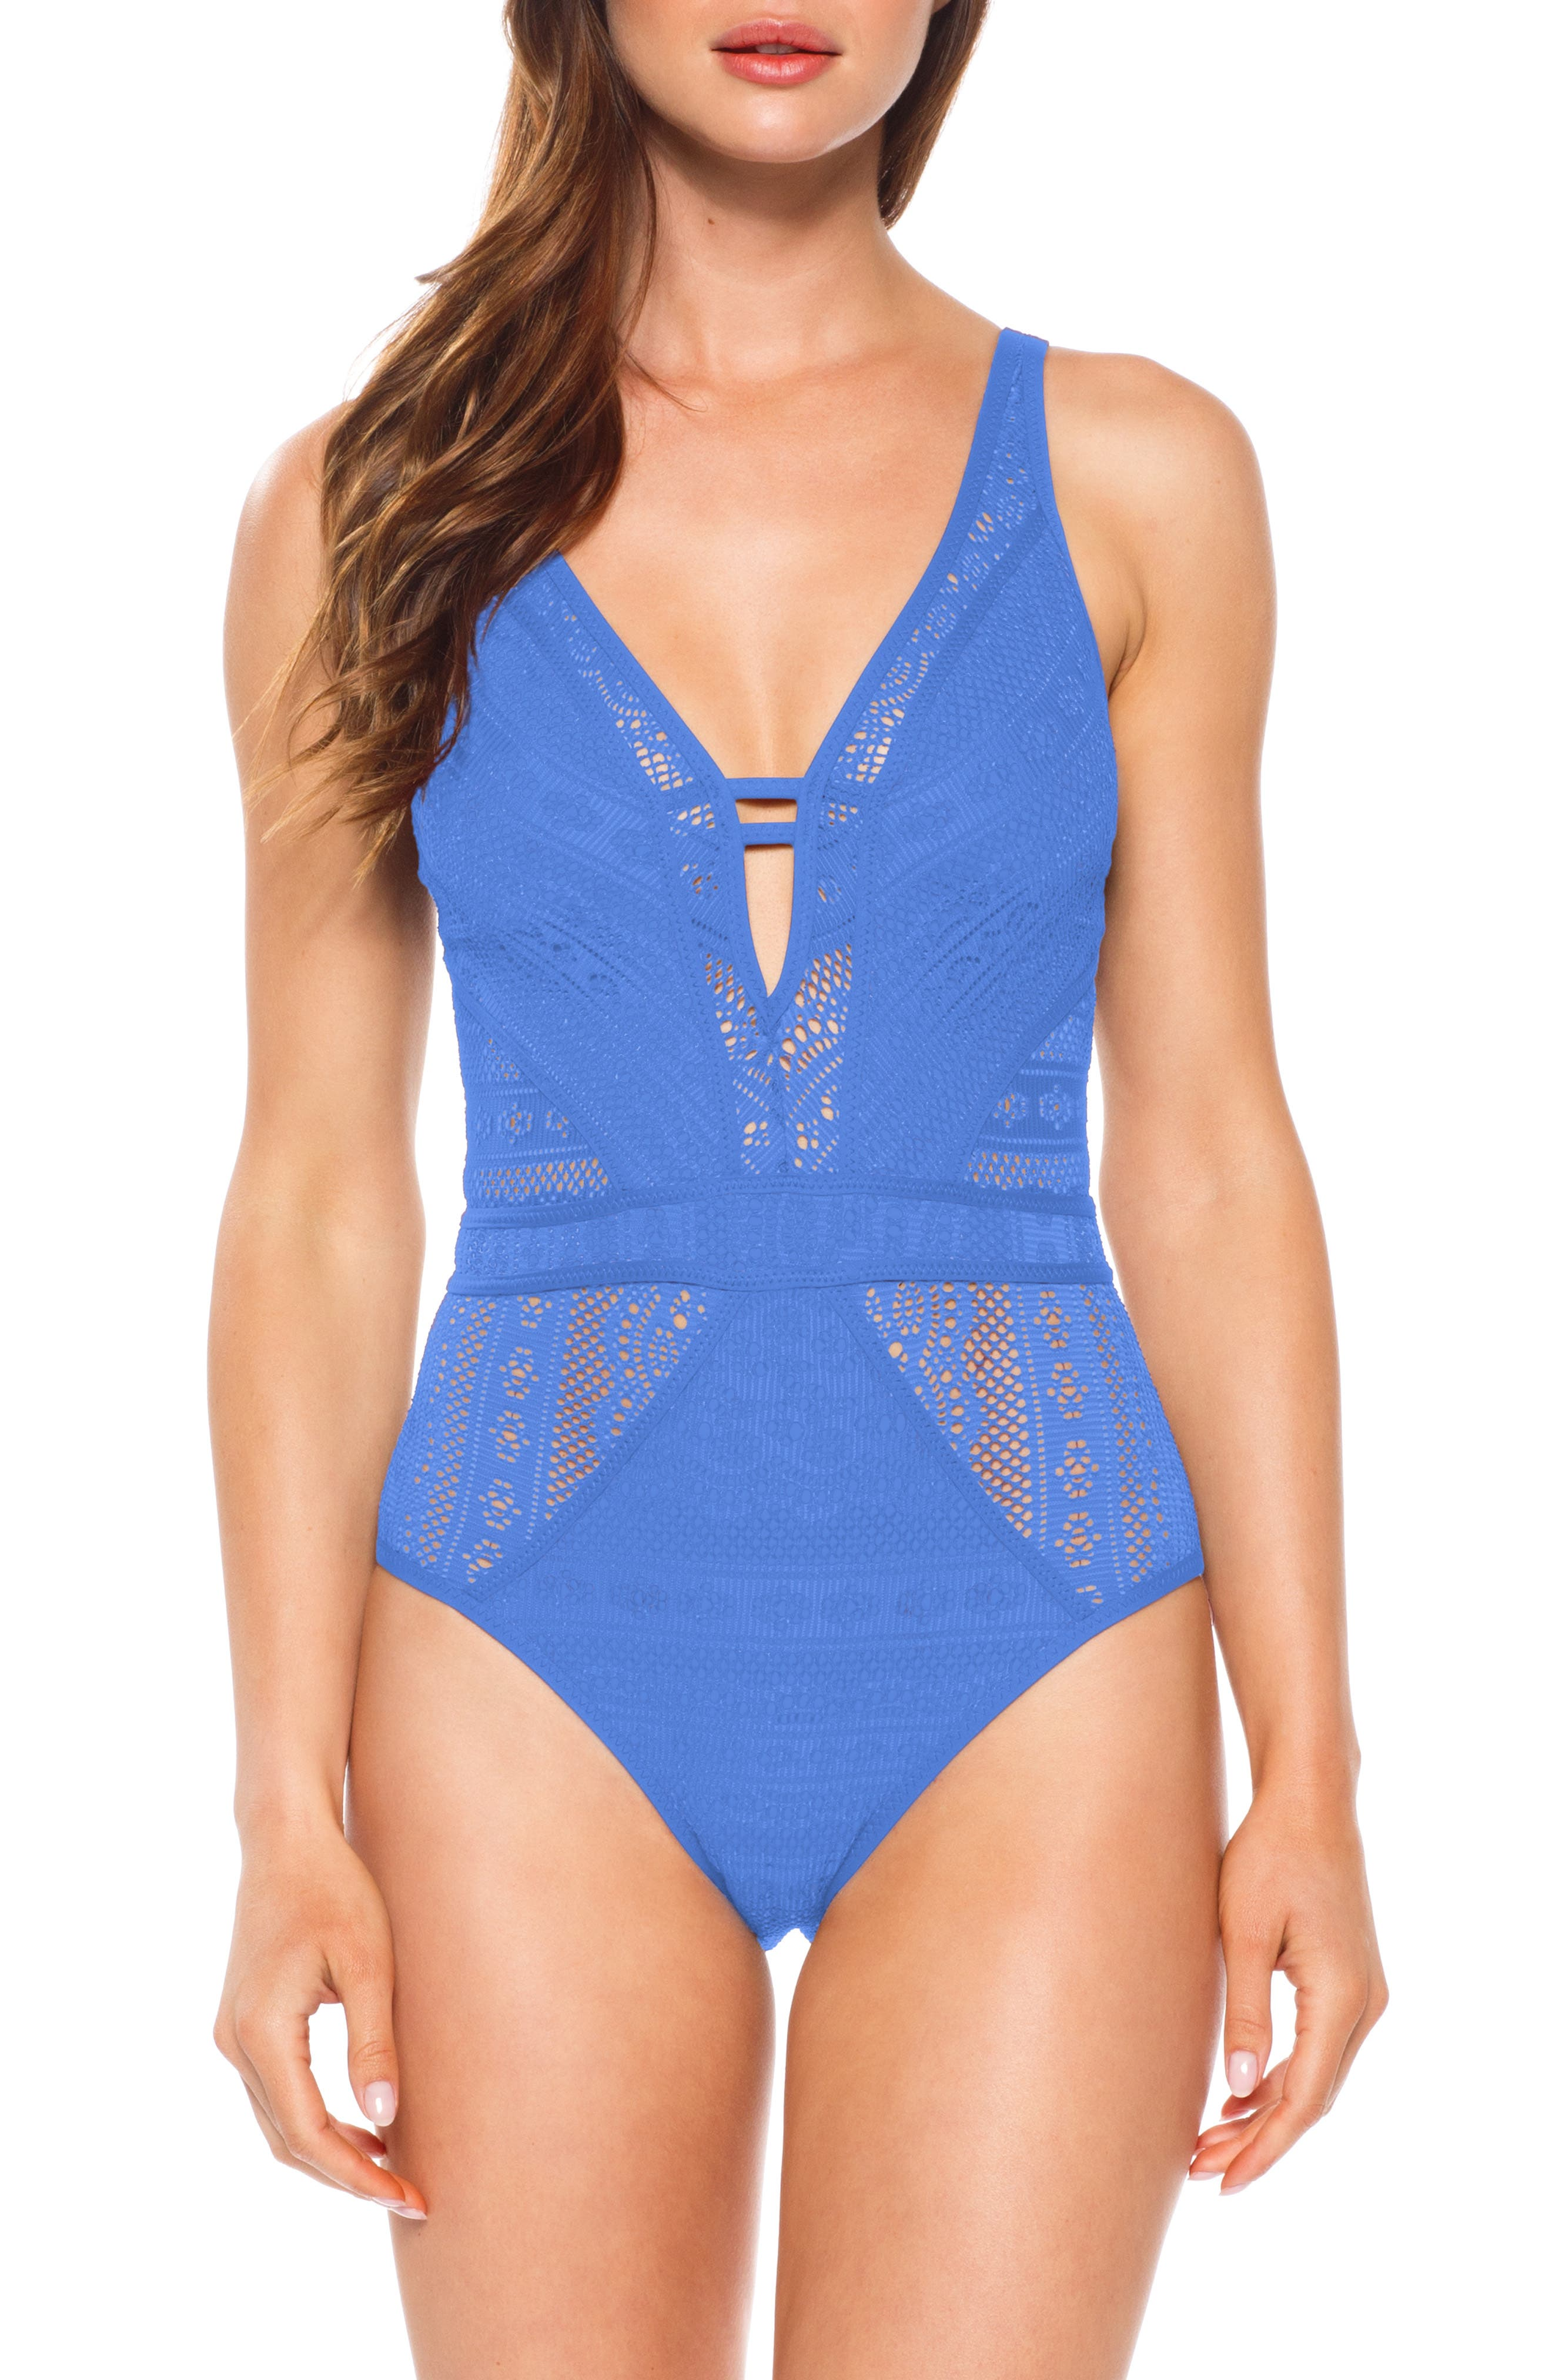 Becca Show & Tell One-Piece Swimsuit, Blue